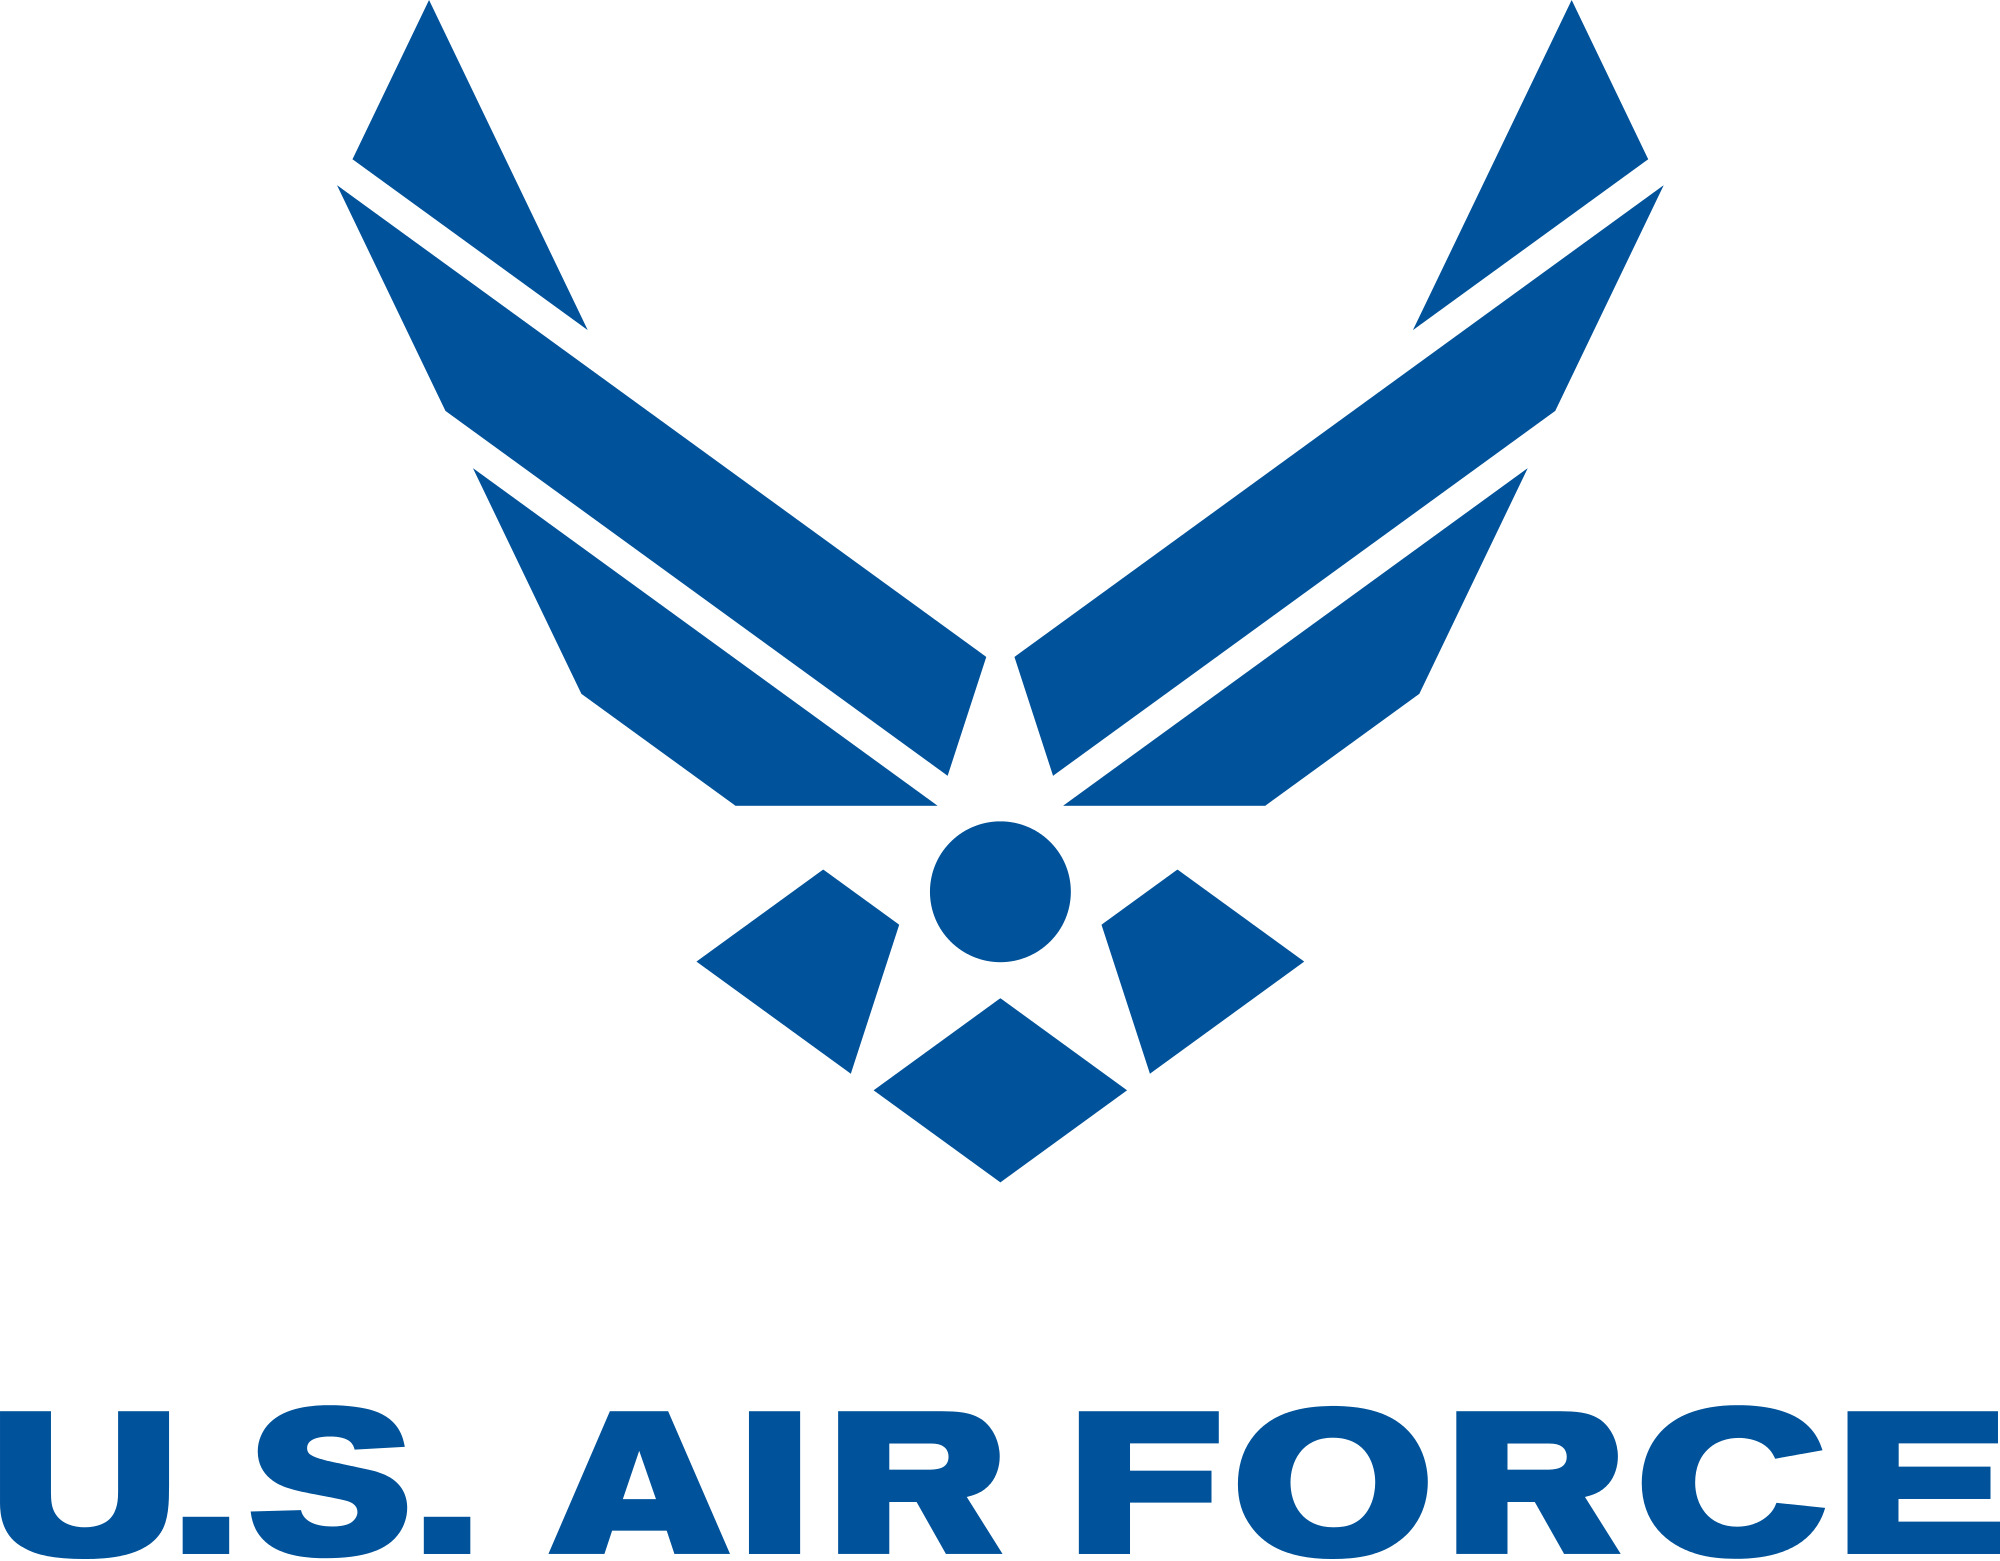 US_Air_Force_Logo_Solid_Colour.svg